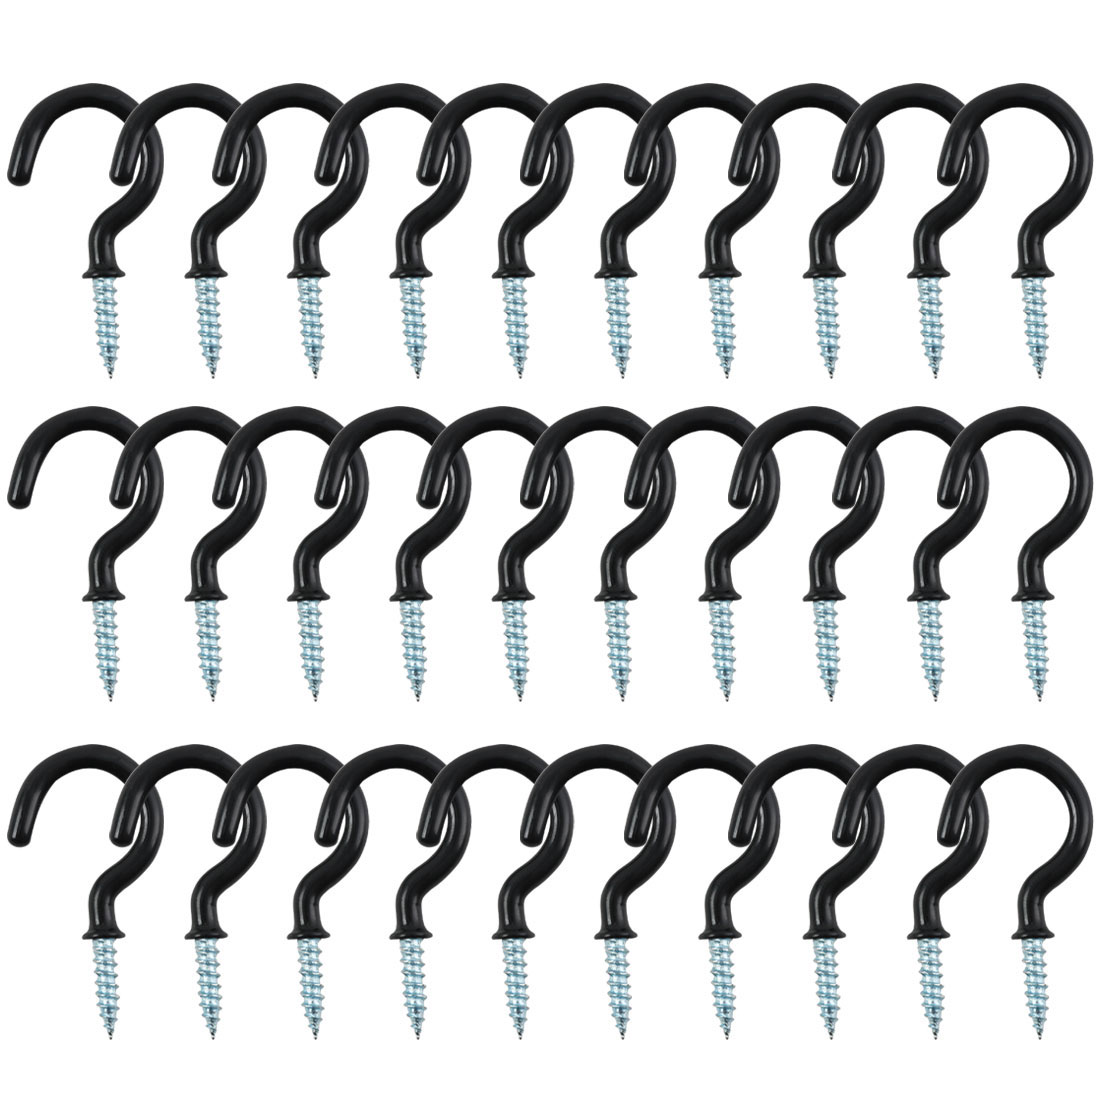 30pcs Cup Ceiling Hooks 1 Inch Metal with Vinyl Coated Screw in Holder Black